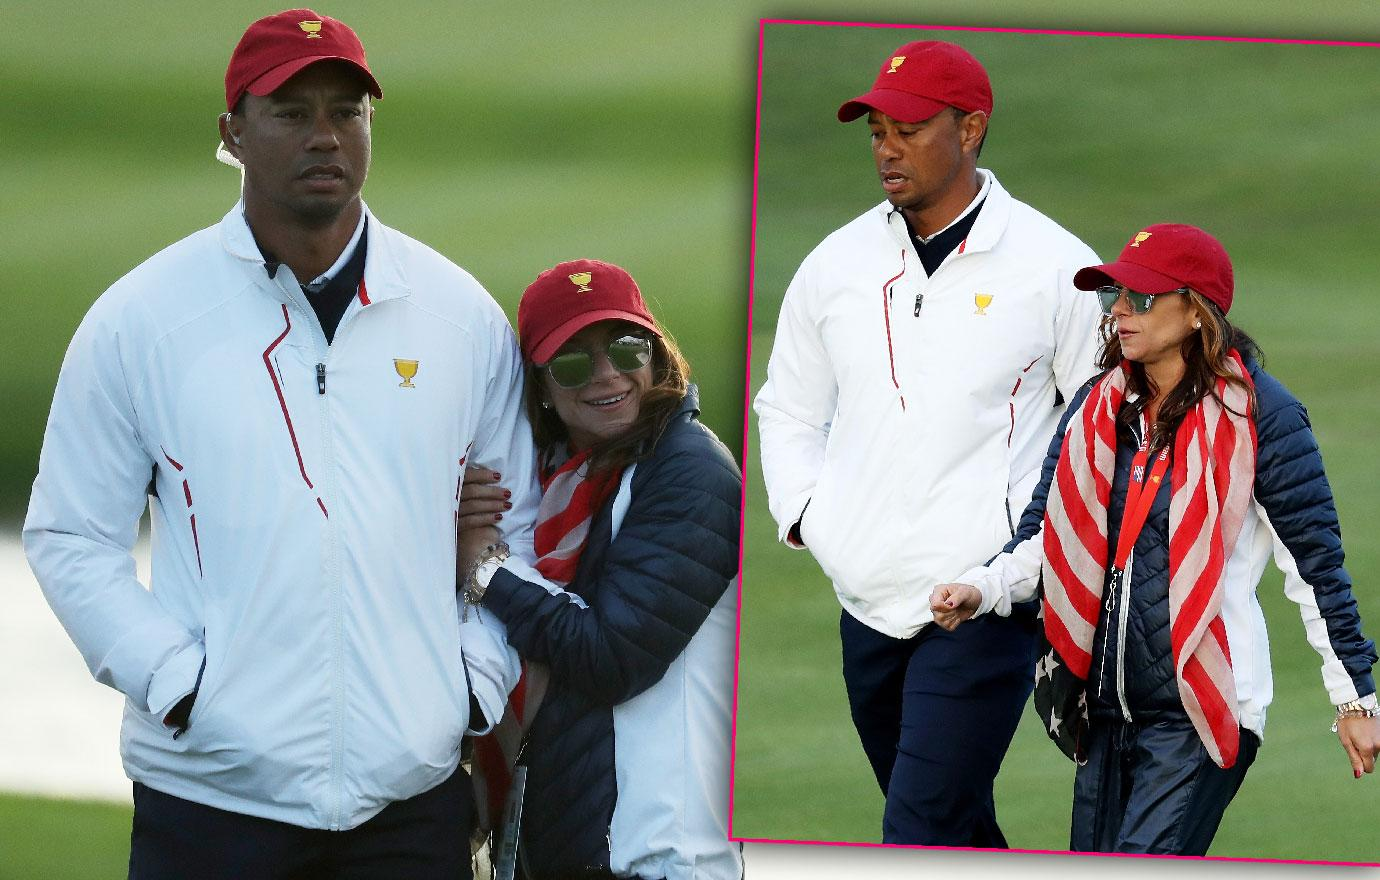 Tiger Woods Mystery Girlfriend Erica Herman Revealed